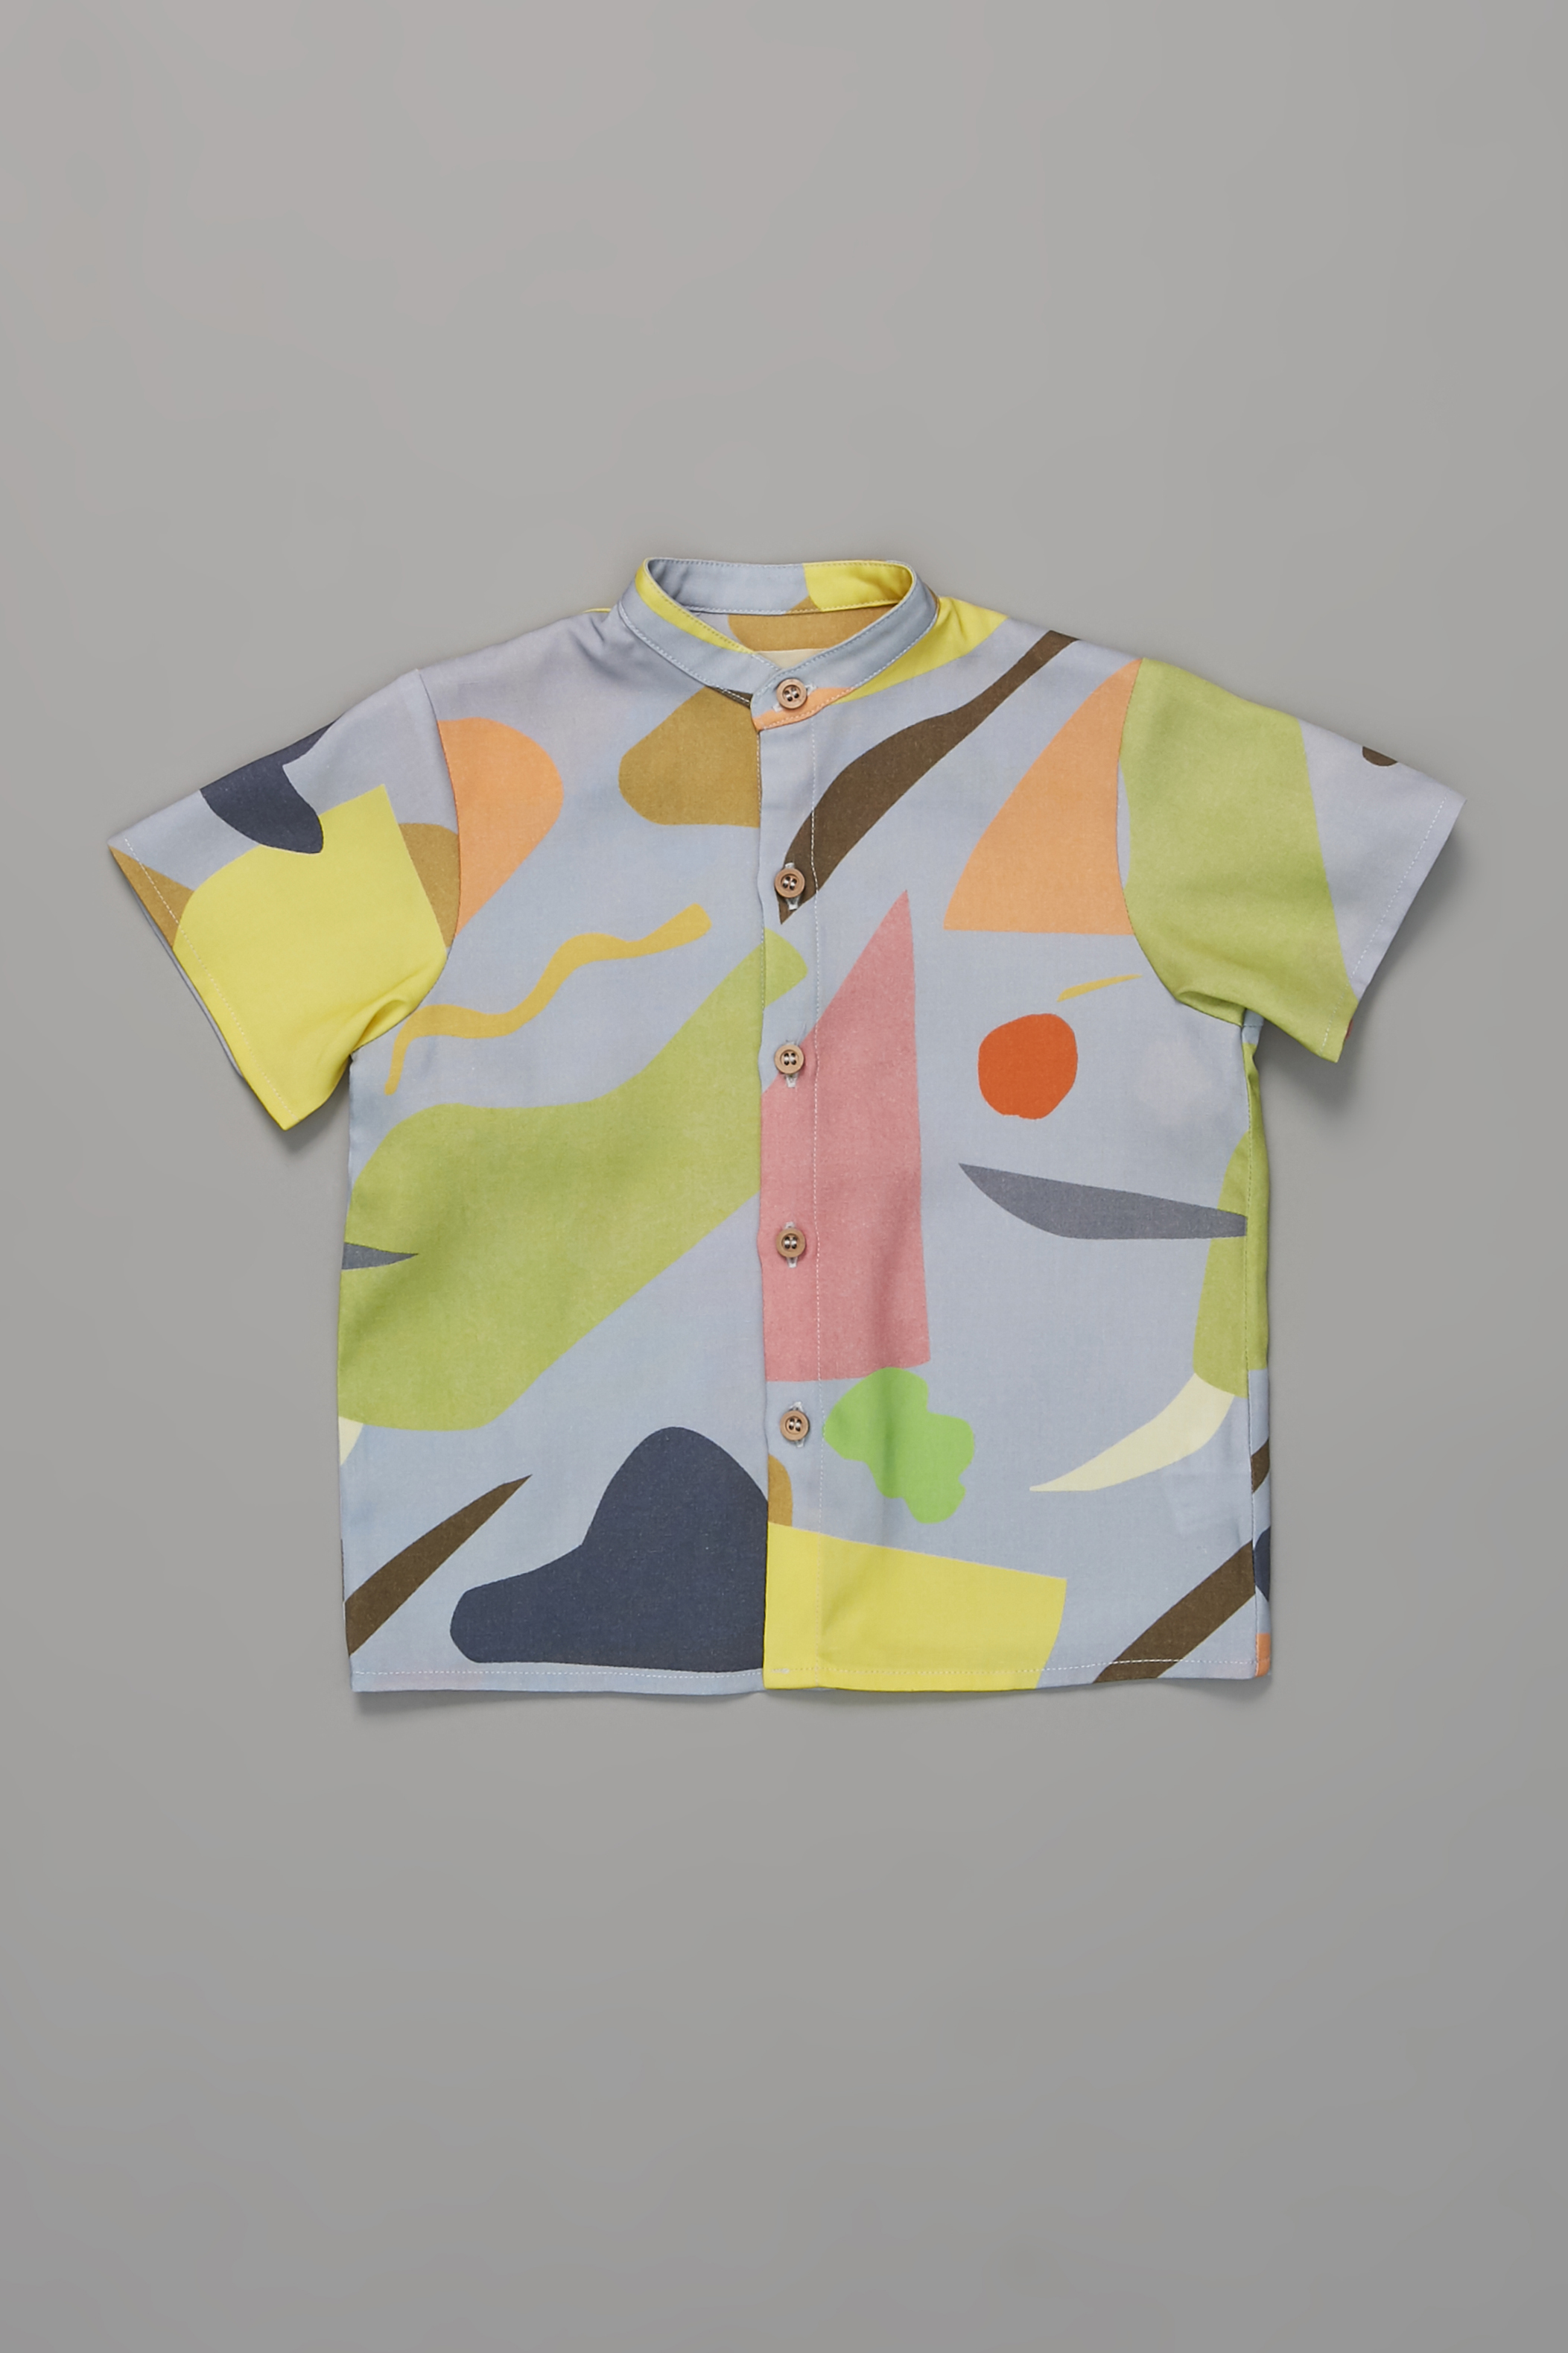 Splendour Viscose Boy's Shirt